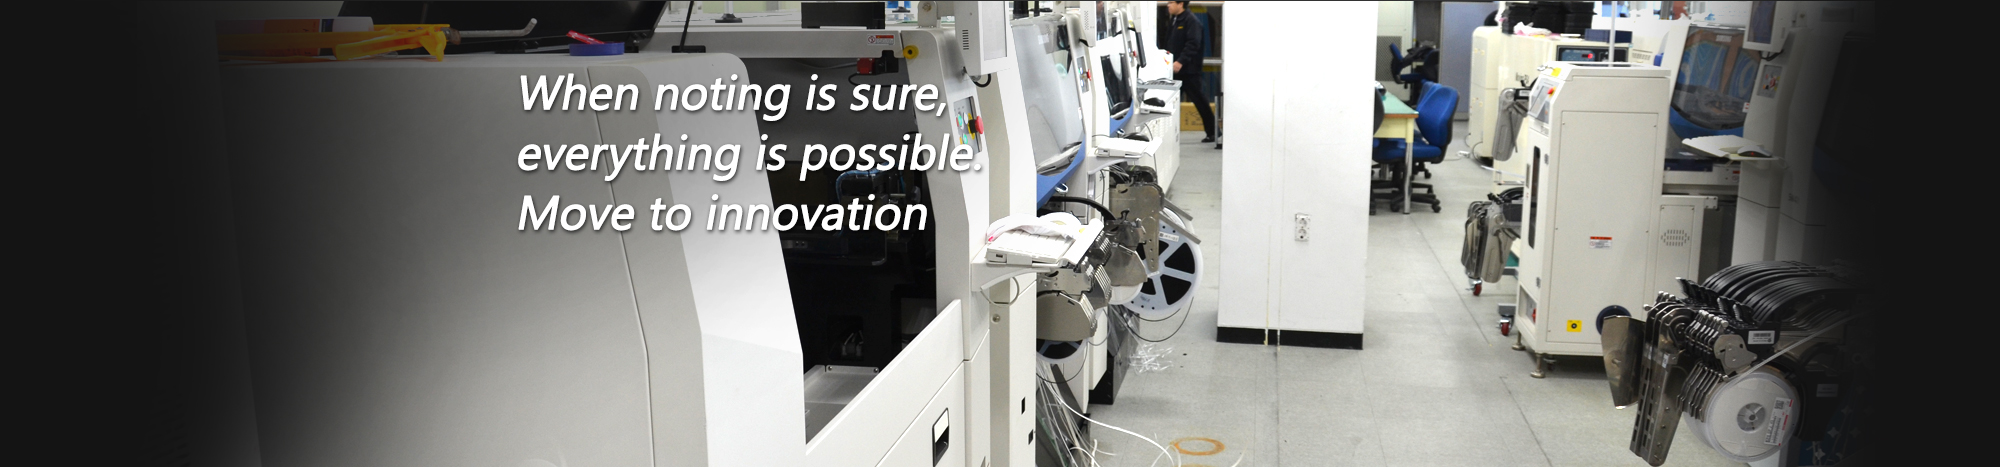 When nothing is sure, everything is possible. Move to innovation